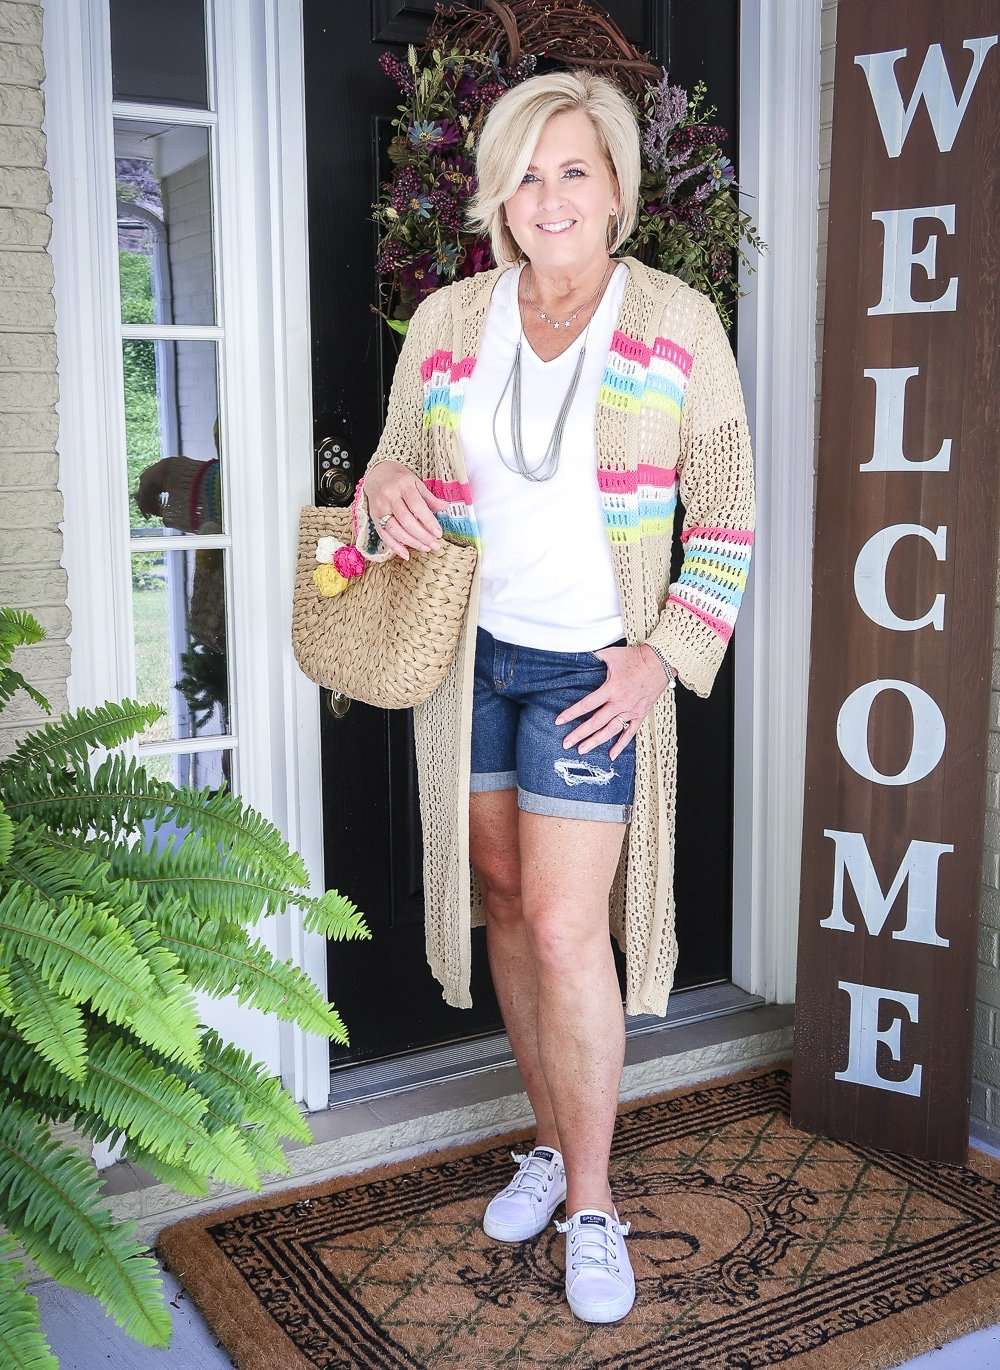 Fashion Blogger 50 Is Not Old is wearing a white v neck t-shirt, distressed jean shorts, carrying a straw bag, and a open knit long cardigan with Sperry no-tie sneakers